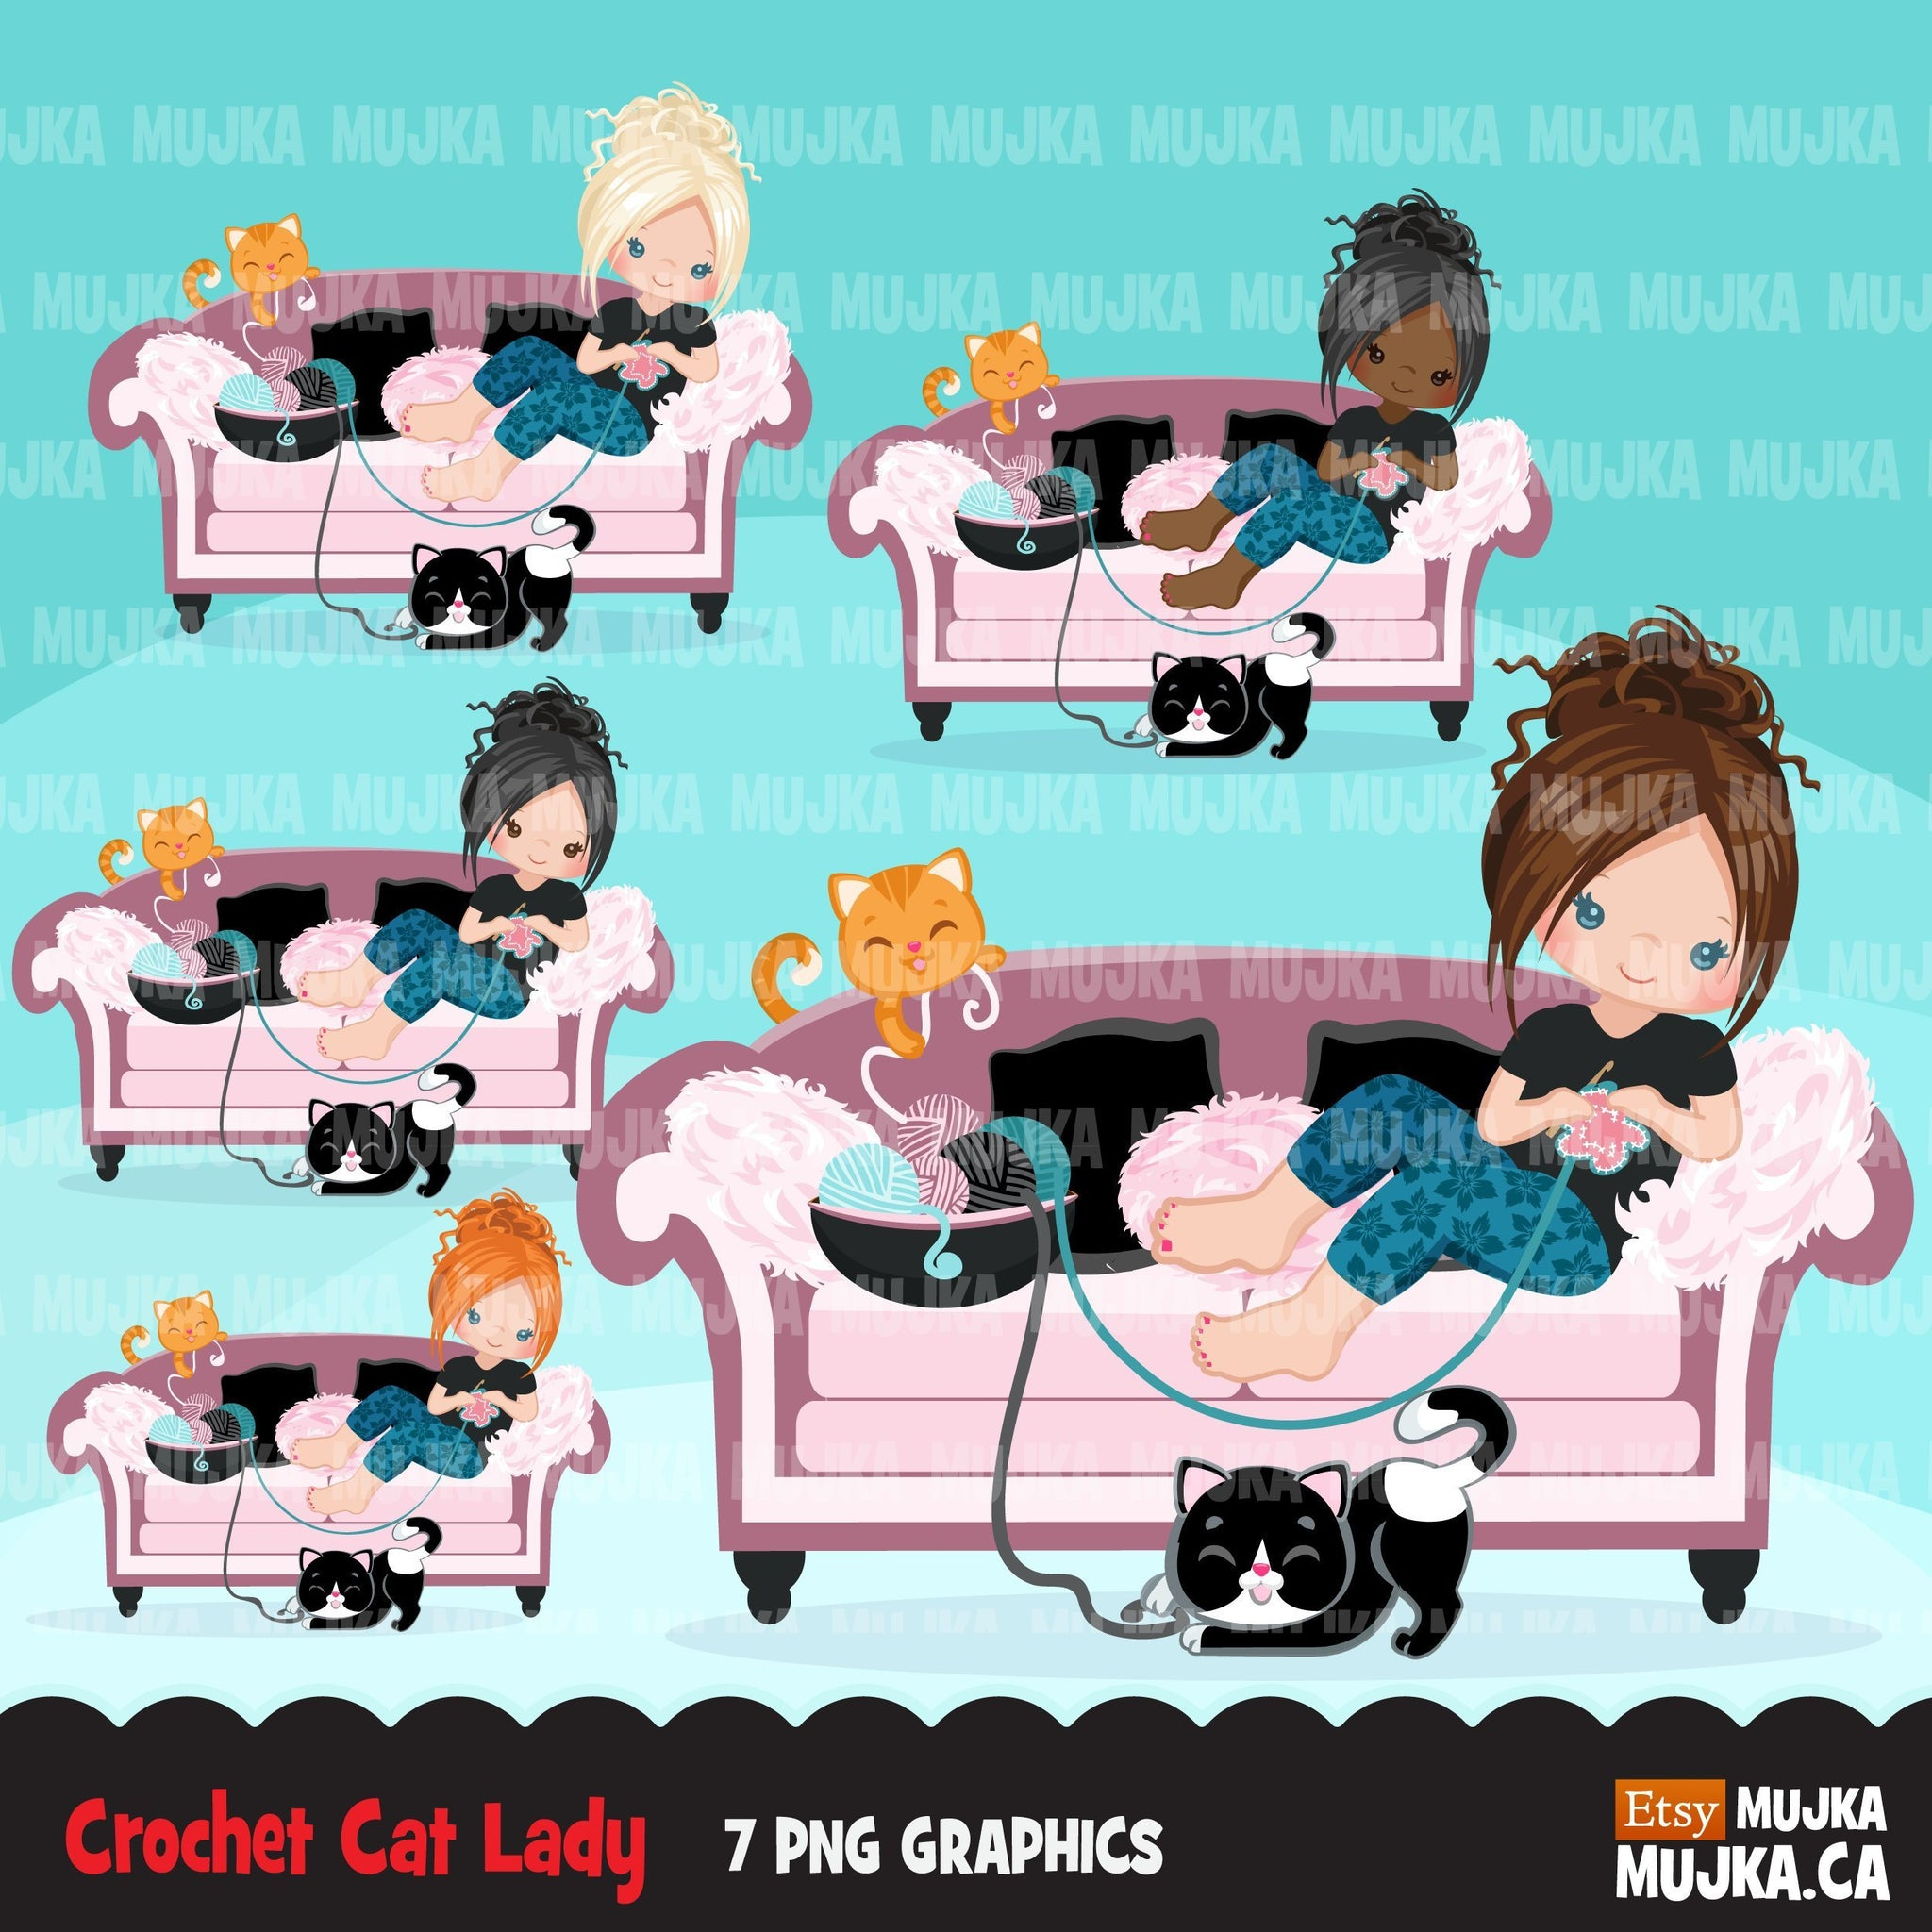 Crochet cat lady, Crafty character clipart graphics, animal, girl